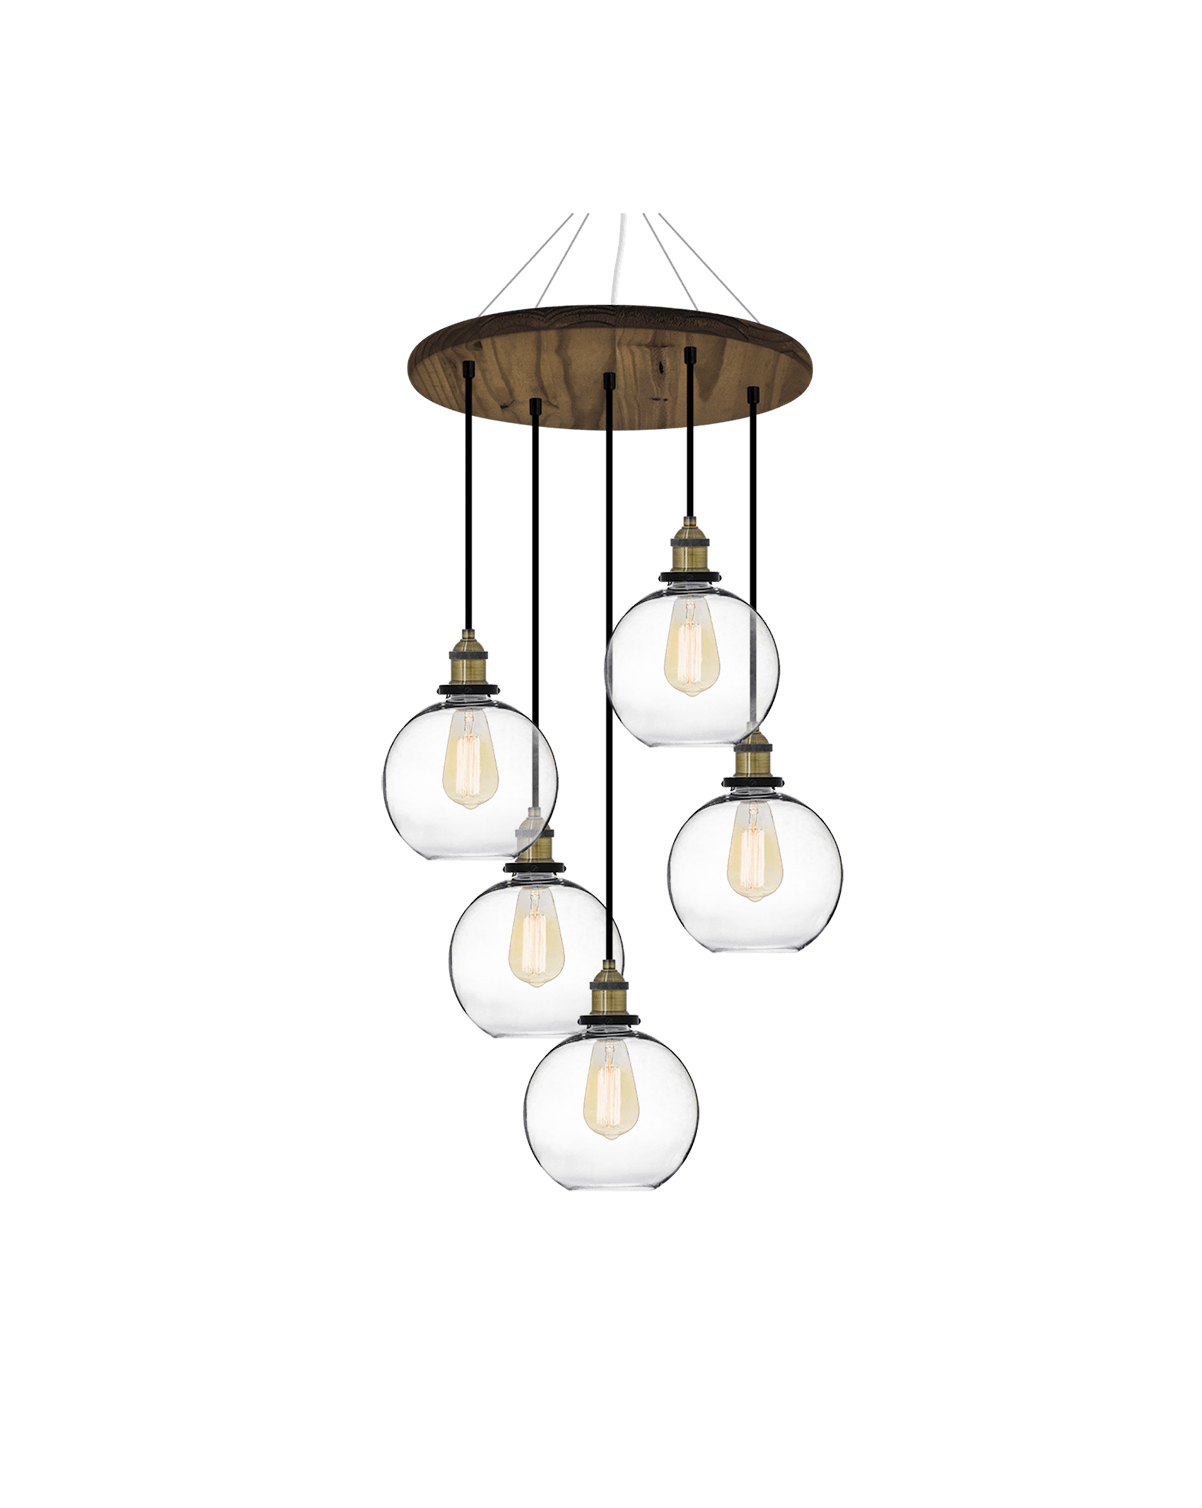 18 Round Wood Chandelier Antique And Glass Globe Shades Hangout Lighting